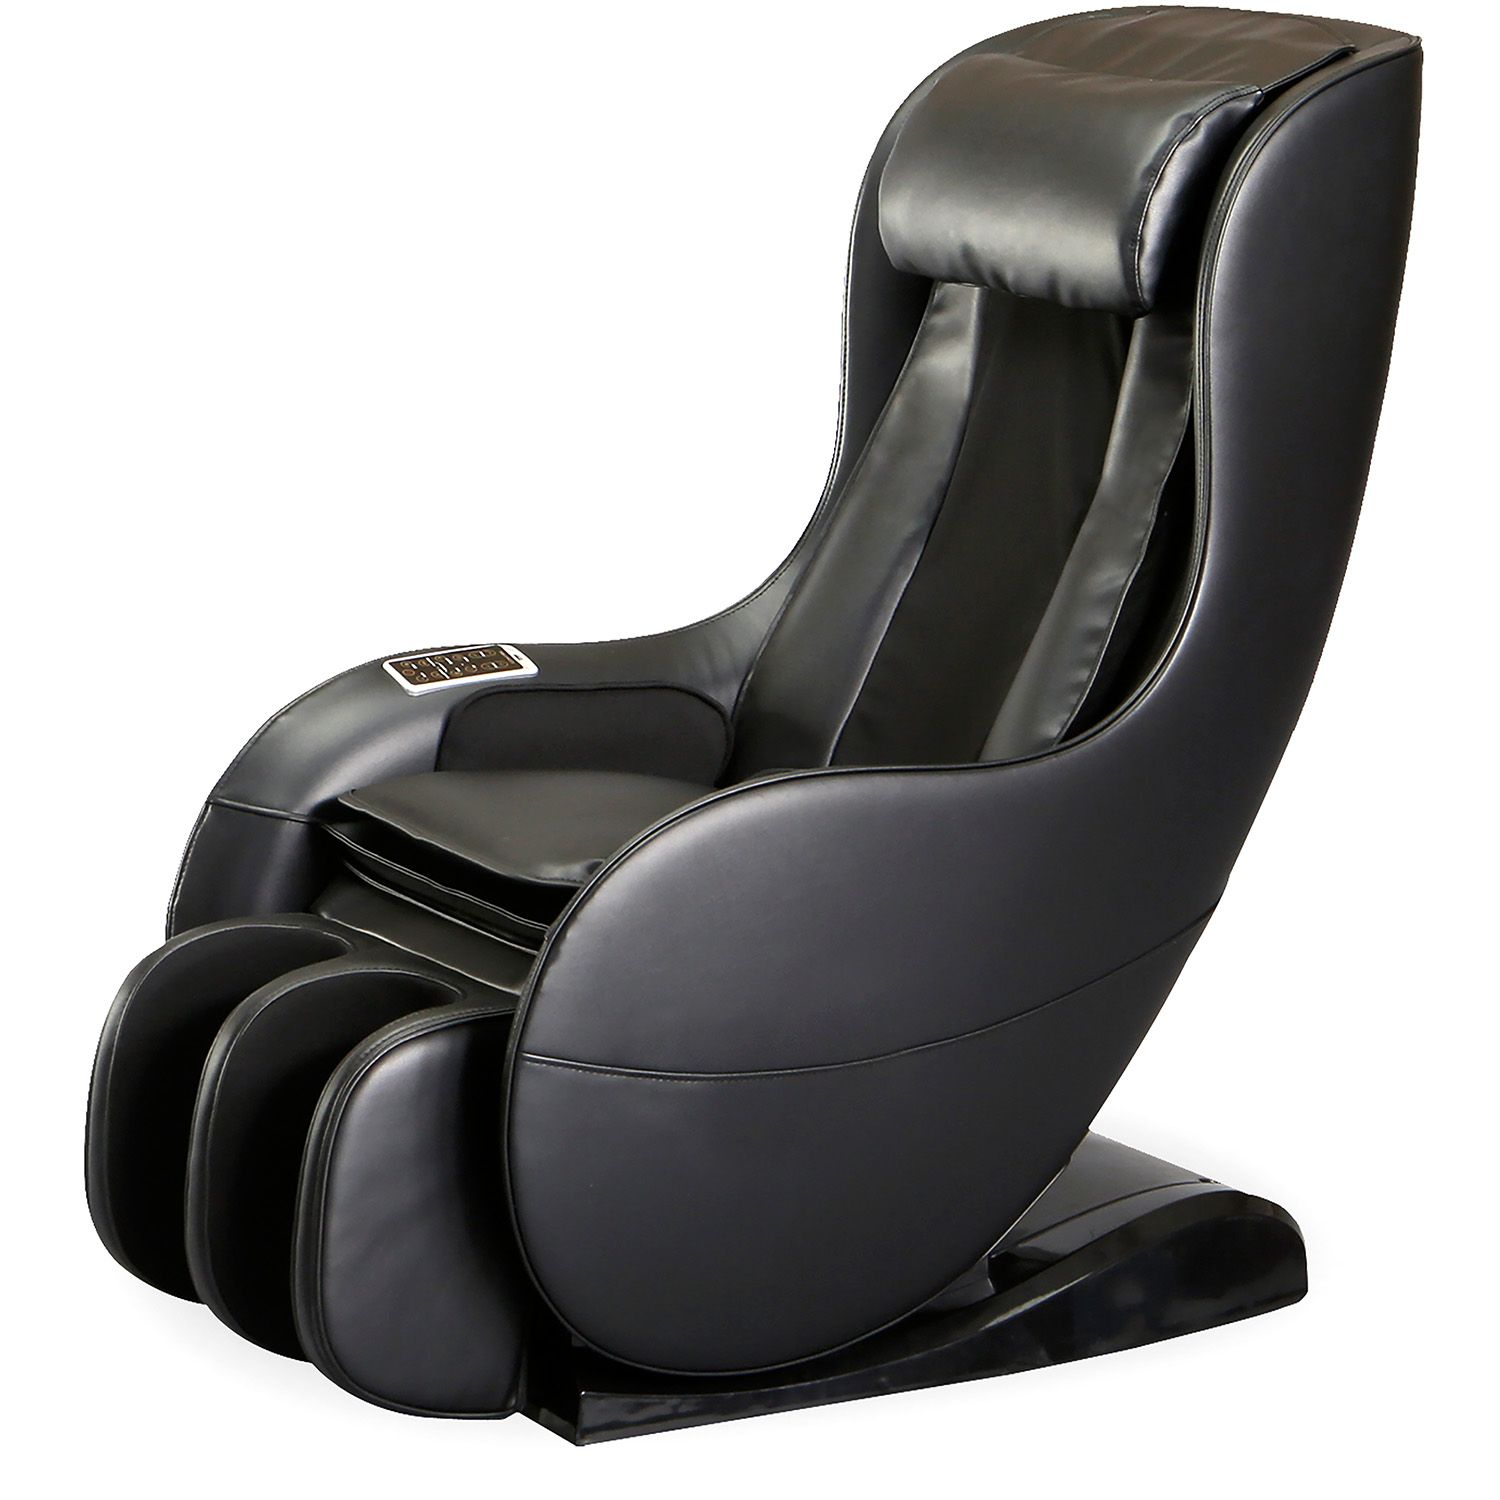 2D Zero Gravity XL Gaming Massage Chair